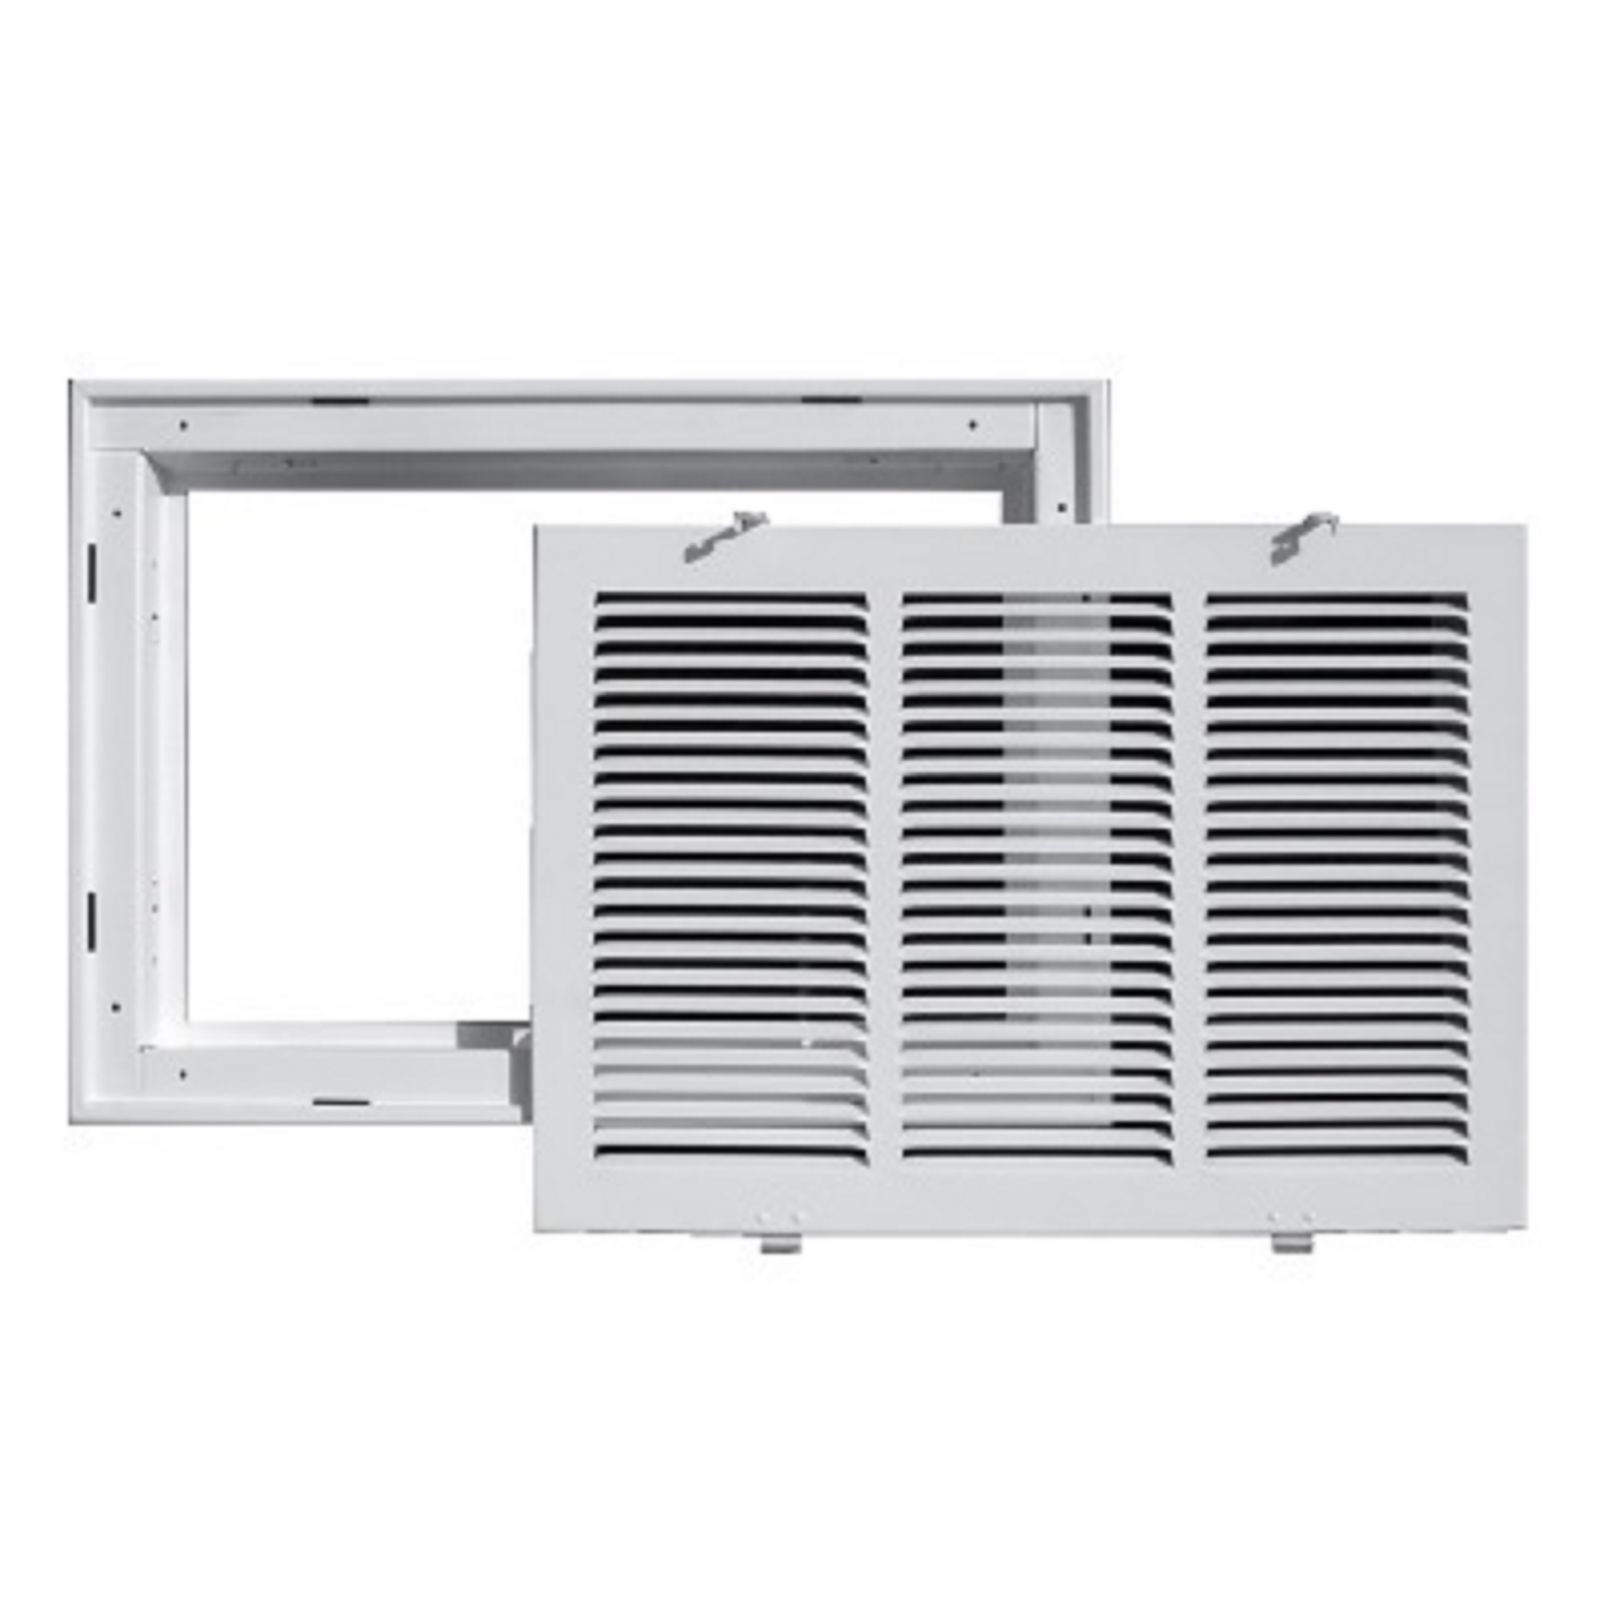 "TRUaire 190RF 30X10 - Steel Return Air Filter Grille With Removable Face, White, 30"" X 10"""